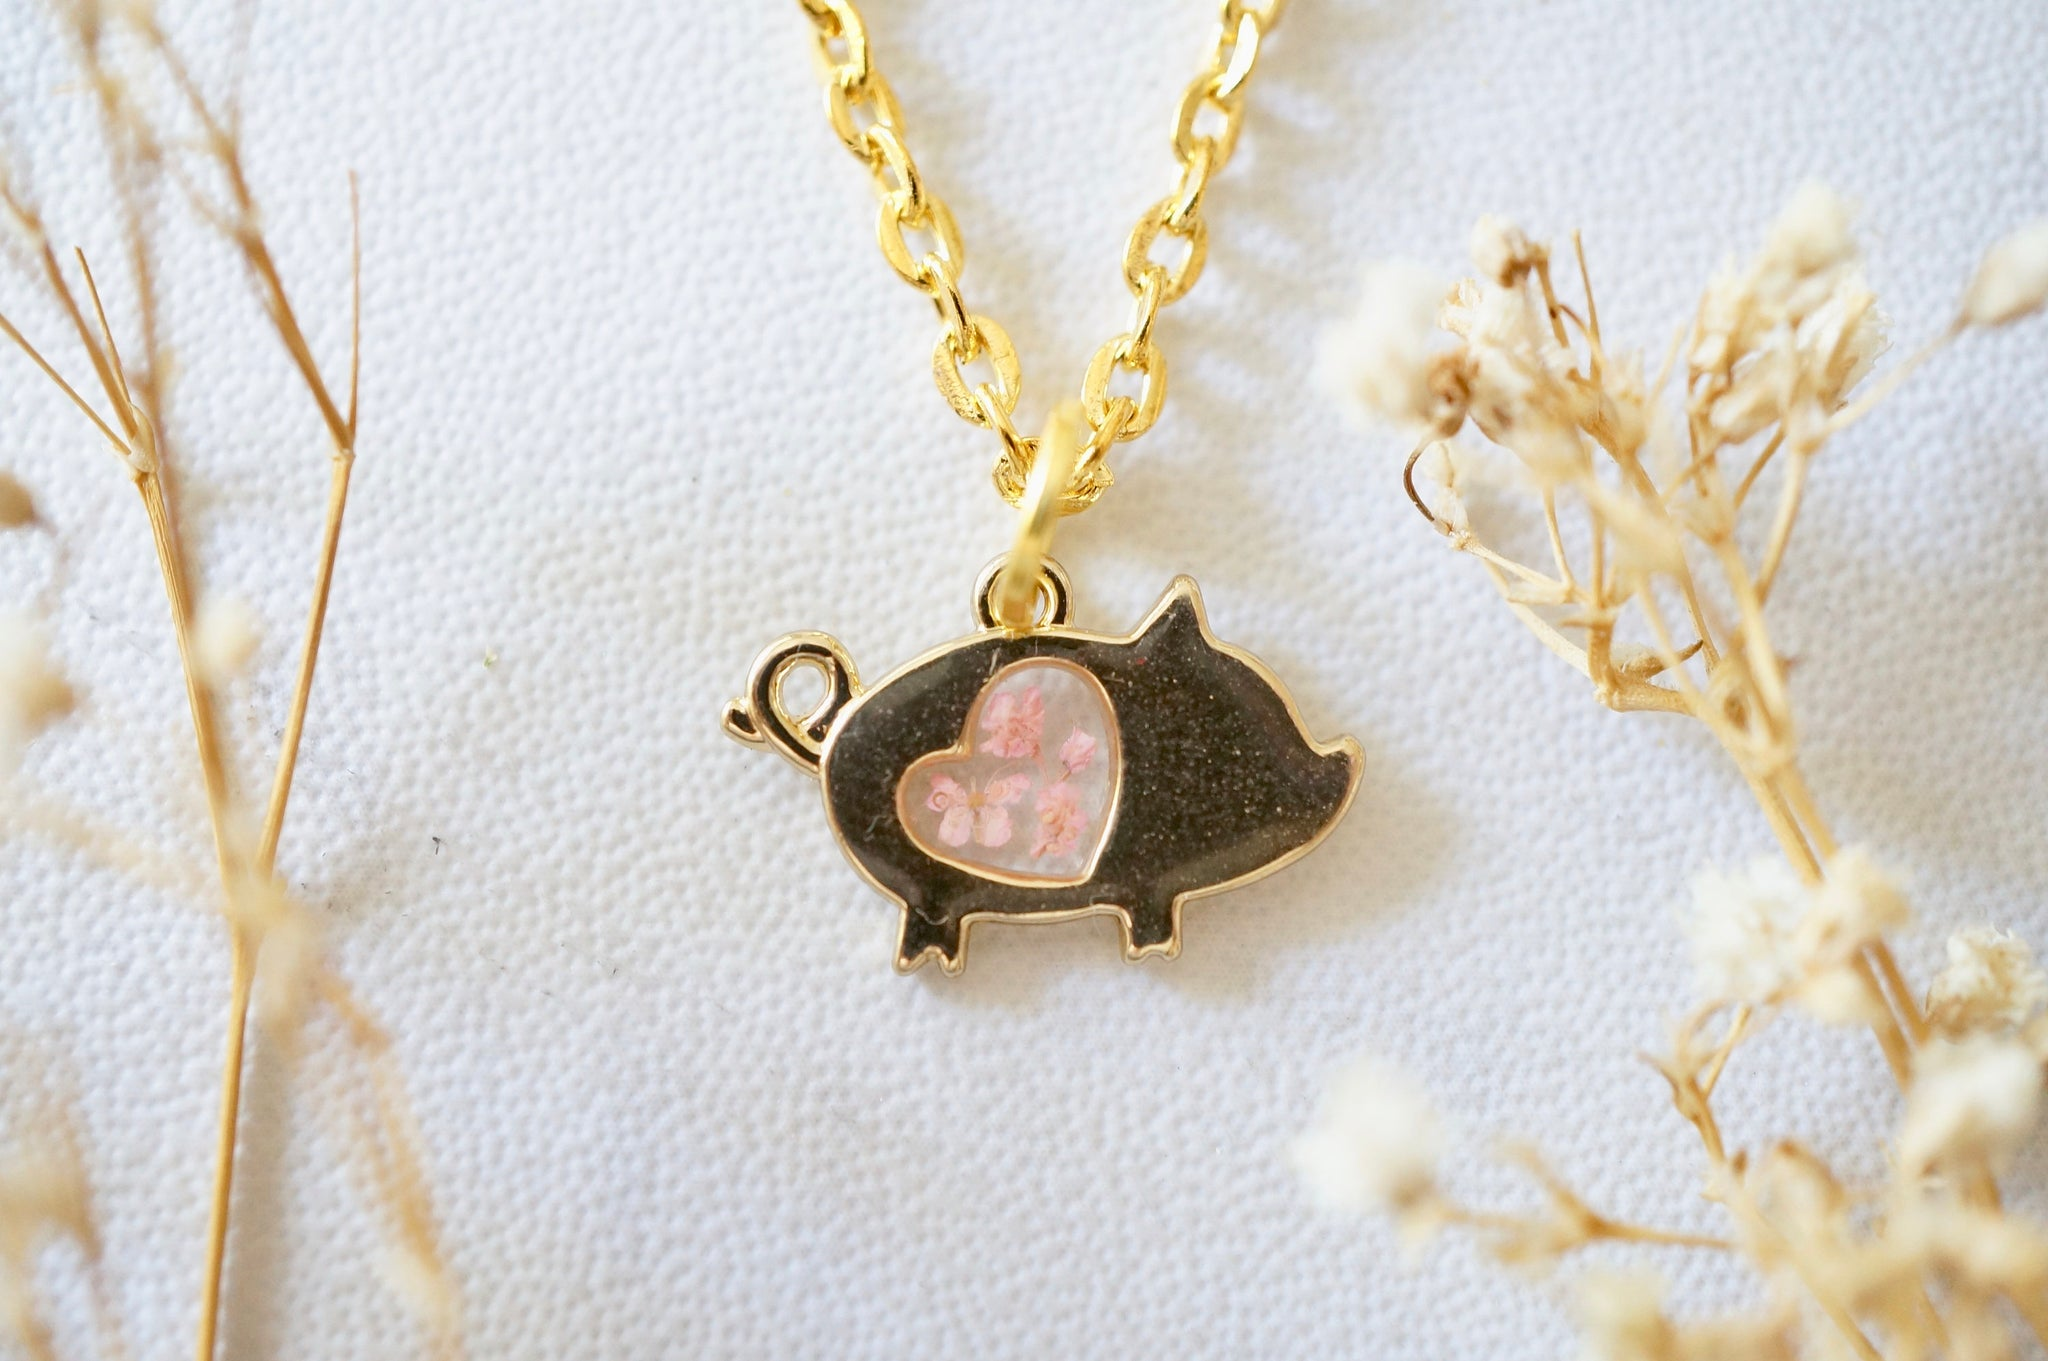 Real Pressed Flowers in Resin, Gold Pig Necklace in Light Pink